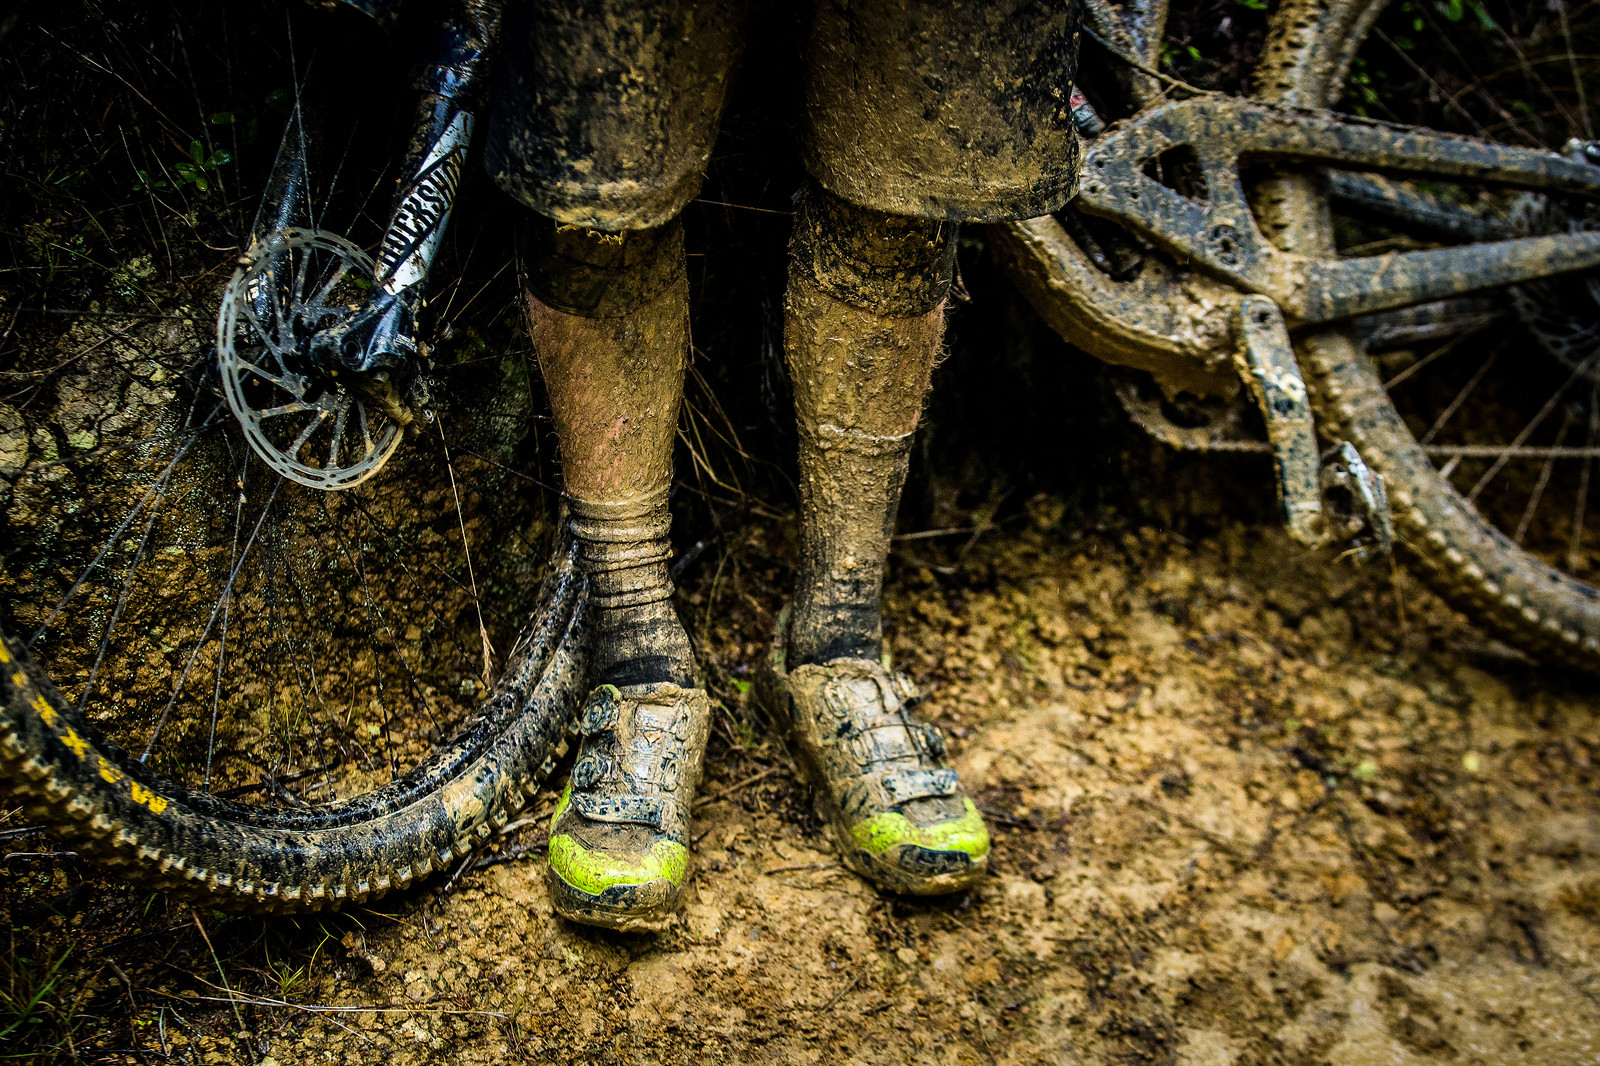 The Is What Day 2 of the NZ Enduro Looked Like - NZ Enduro Day 2 - Mountain Biking Pictures - Vital MTB